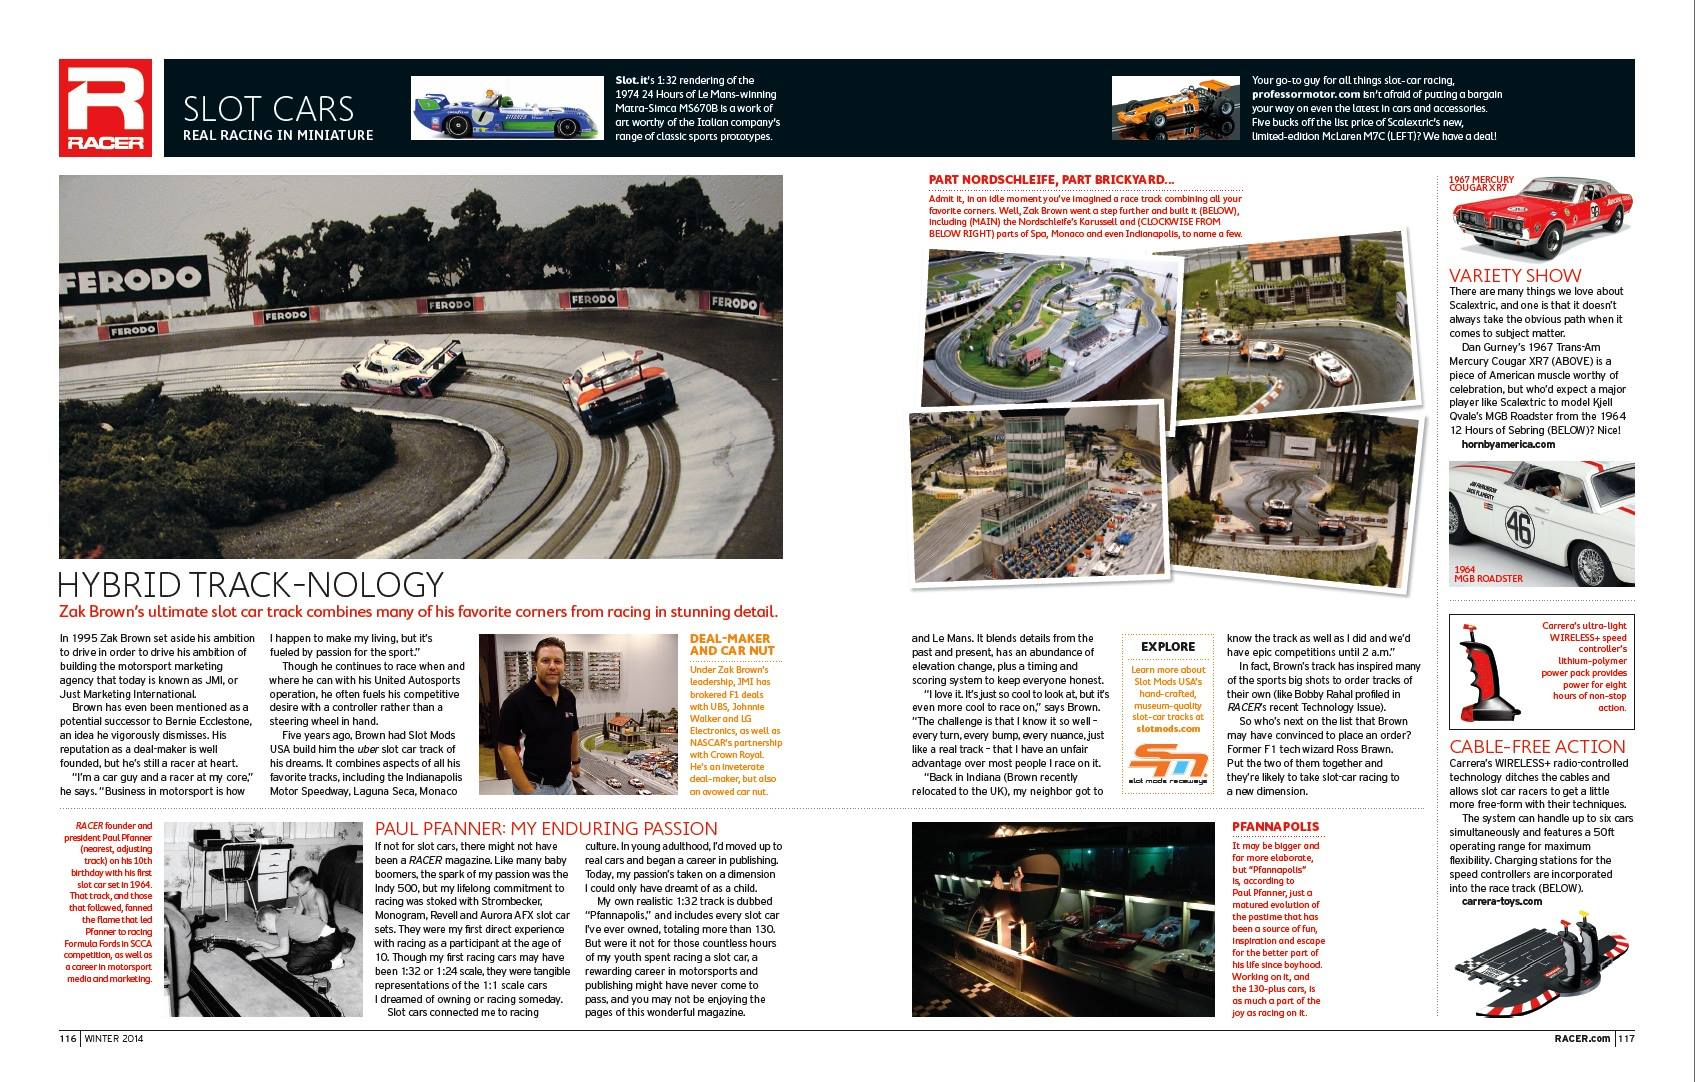 Slot Mods in Winter issue of Racer Magazine | Slot Mods Raceways